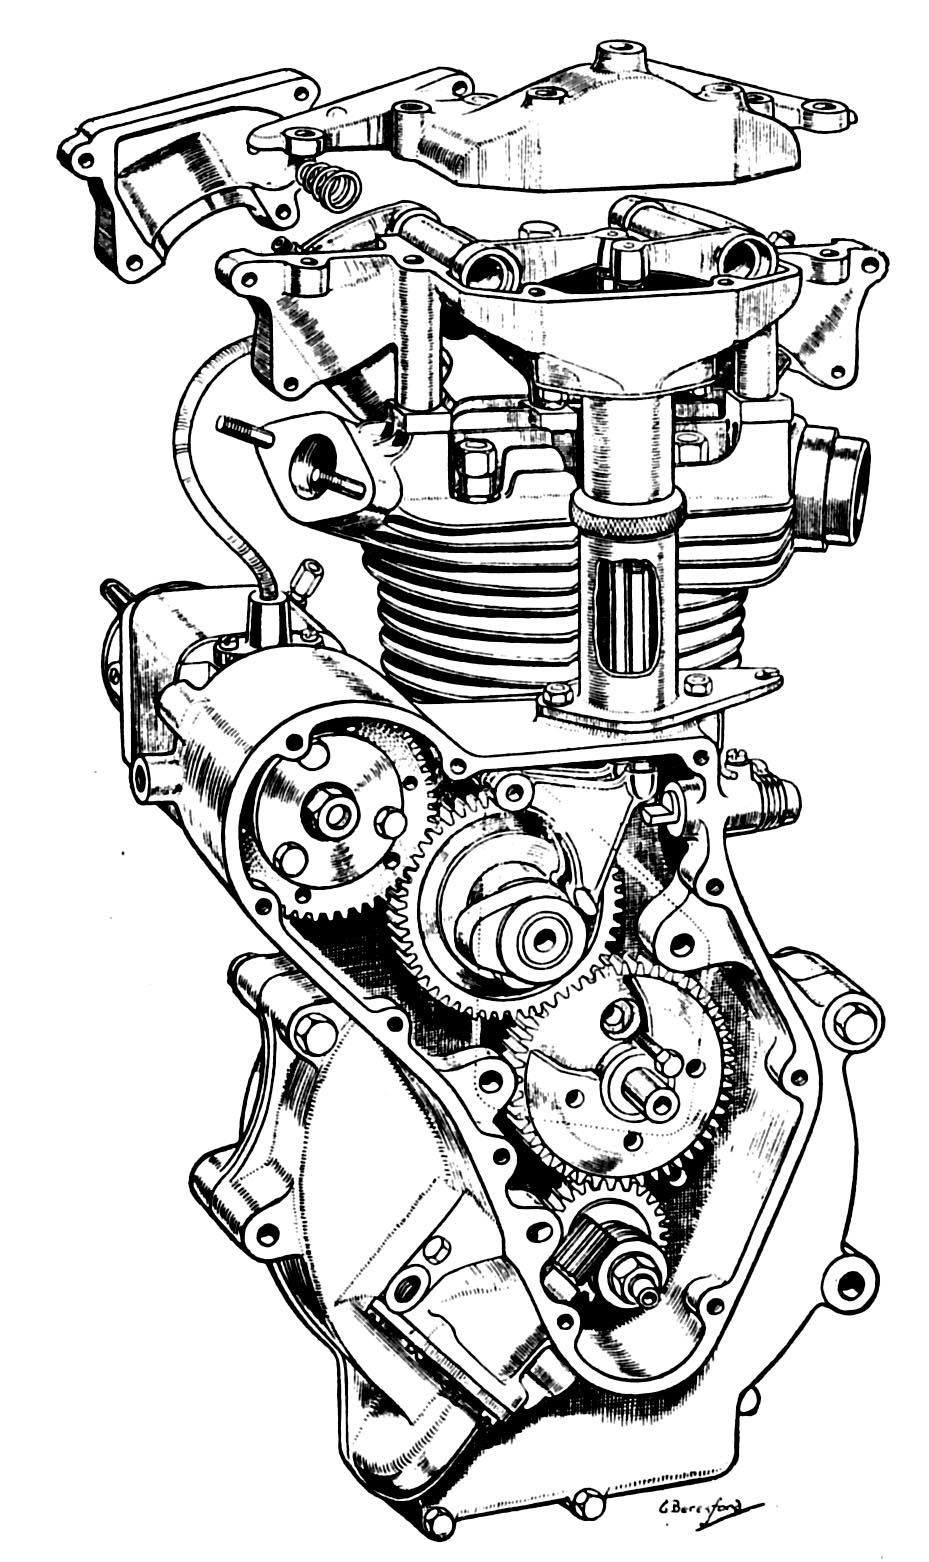 the velobanjogent pen and ink drawings from motorcycle and Edward the Engine 2 the velobanjogent pen and ink drawings from motorcycle and motorcycling i m back on these they fascinate me